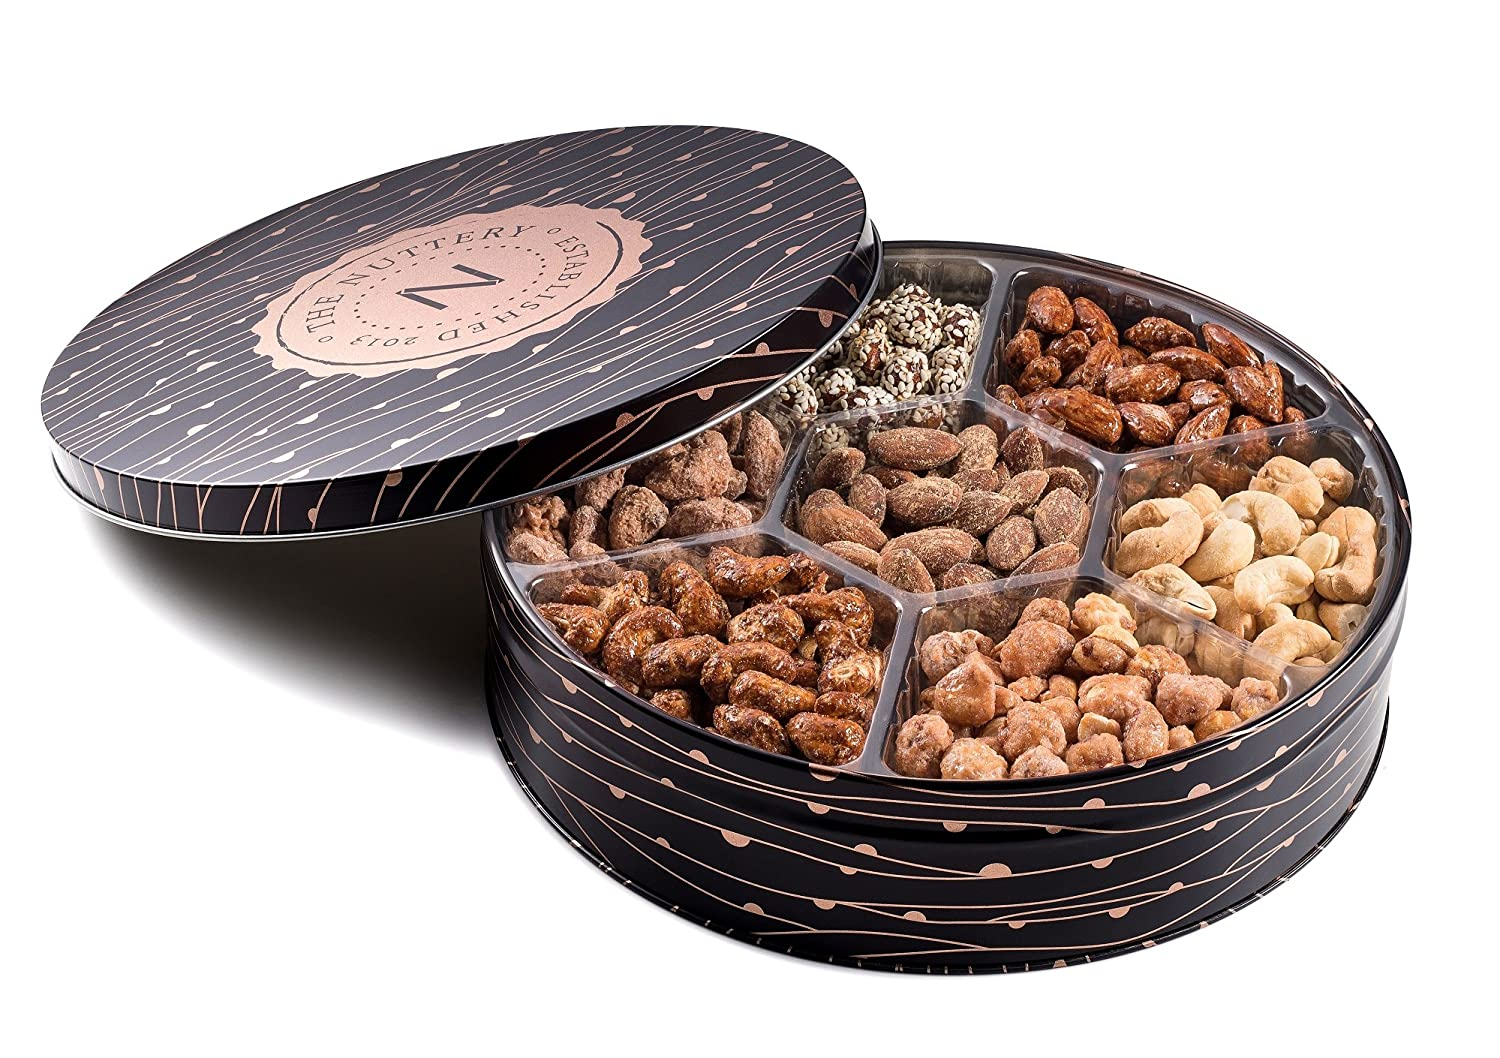 Premium Quality 7 Section Nuts Gift Tin Includes Gourmet Healthy Food Snacks Of Fresh Dry Roasted Salted and Sweet Mixed Nuts Perfect Holiday and Corporate Basket